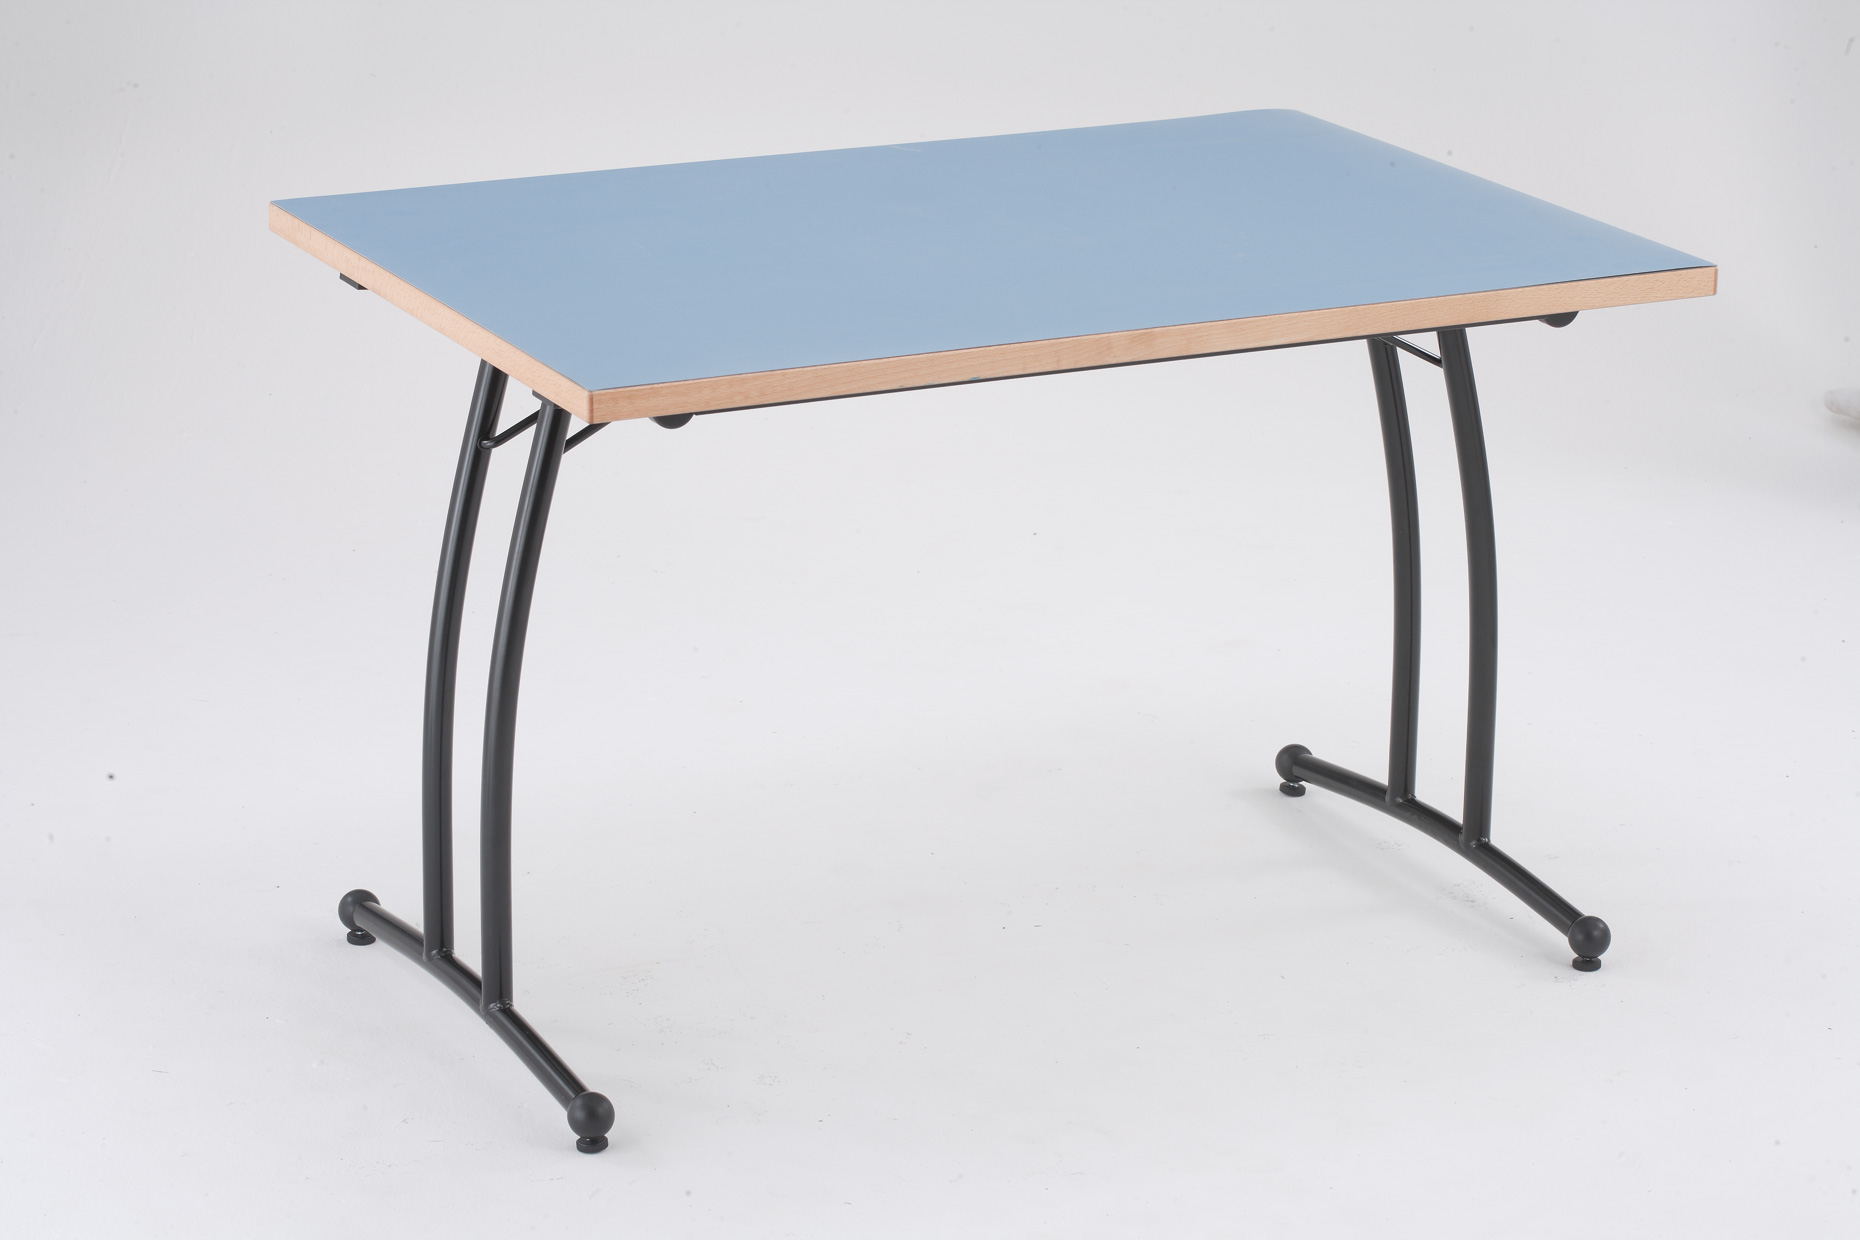 Table pliante legere 28 images table pliante 150 cm en - Table esthetique pliante legere ...